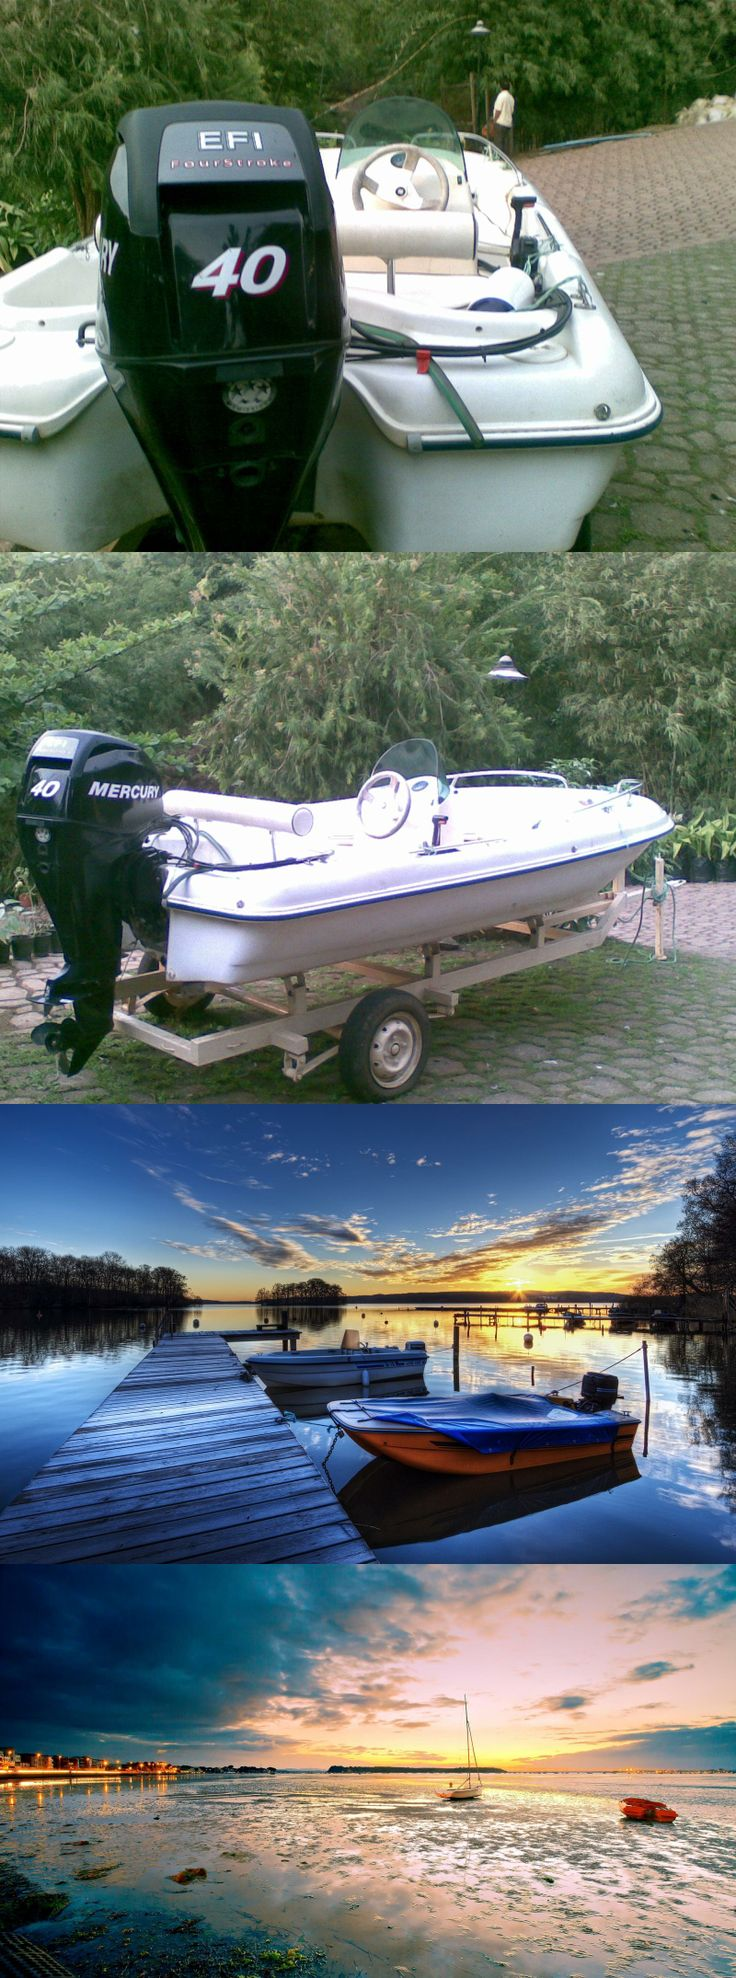 1000 images about personal boats on pinterest deep sea for Personal fishing boat